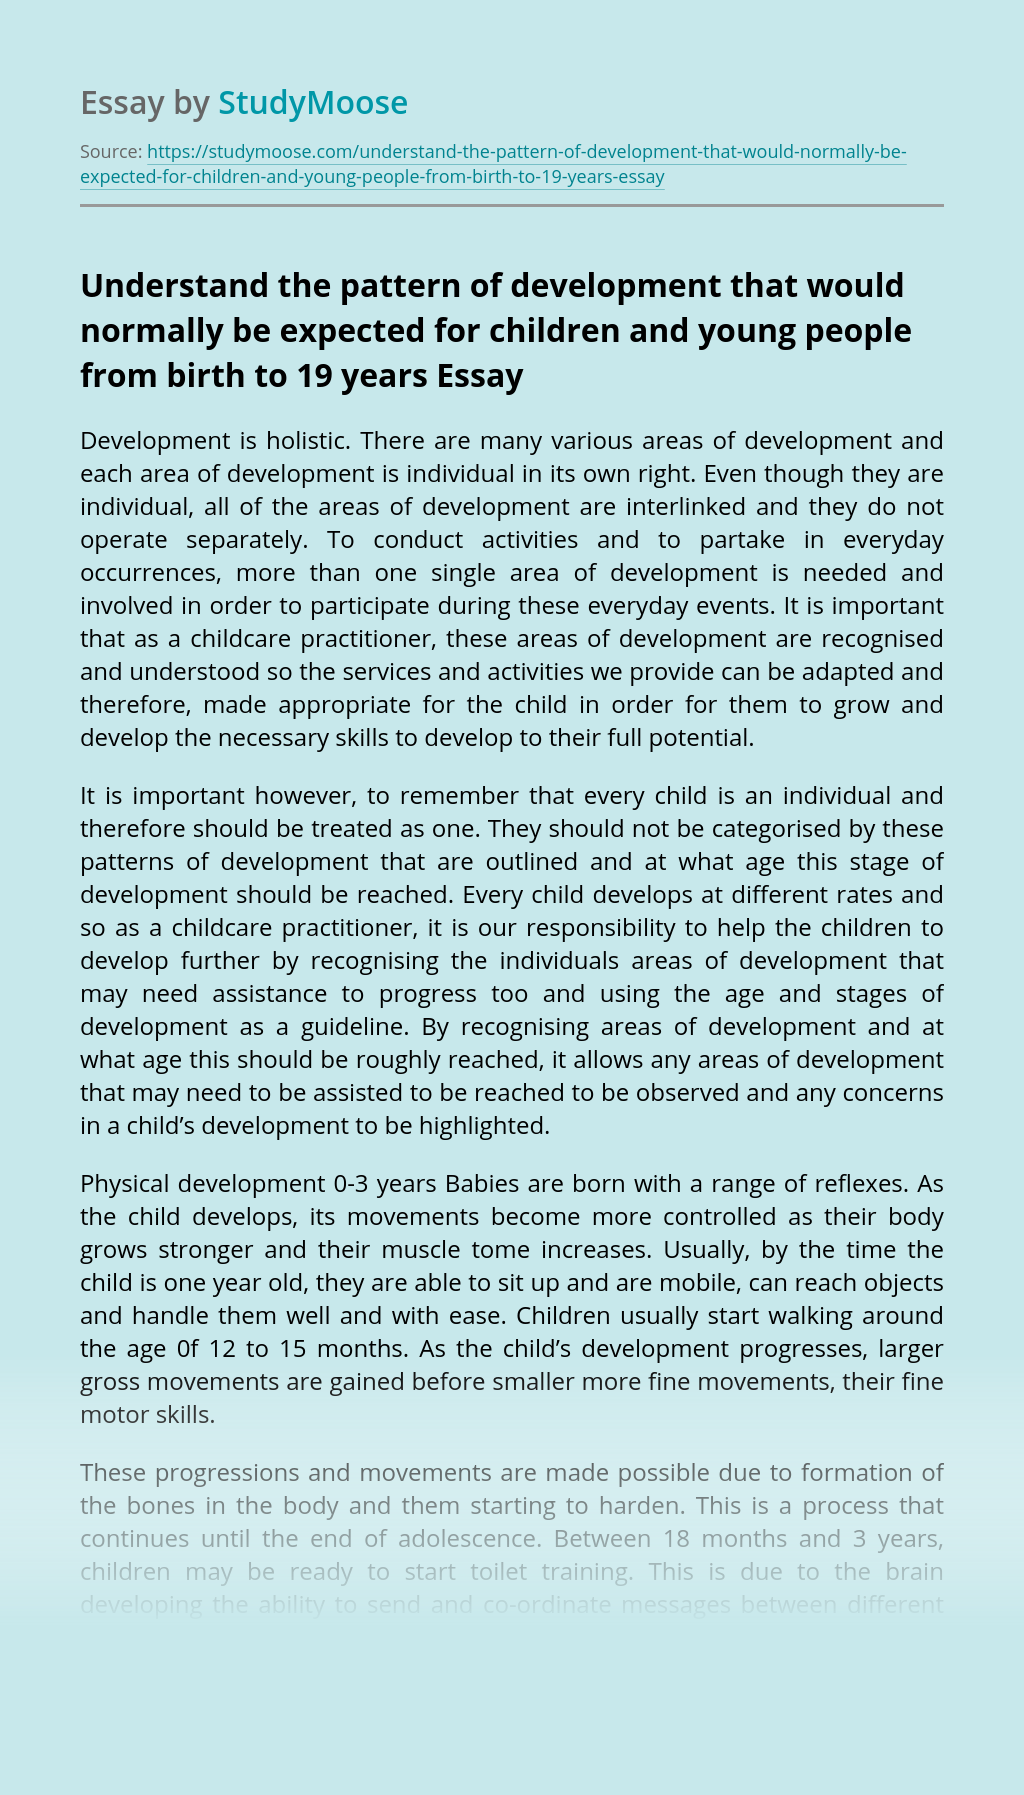 Understand the pattern of development that would normally be expected for children and young people from birth to 19 years